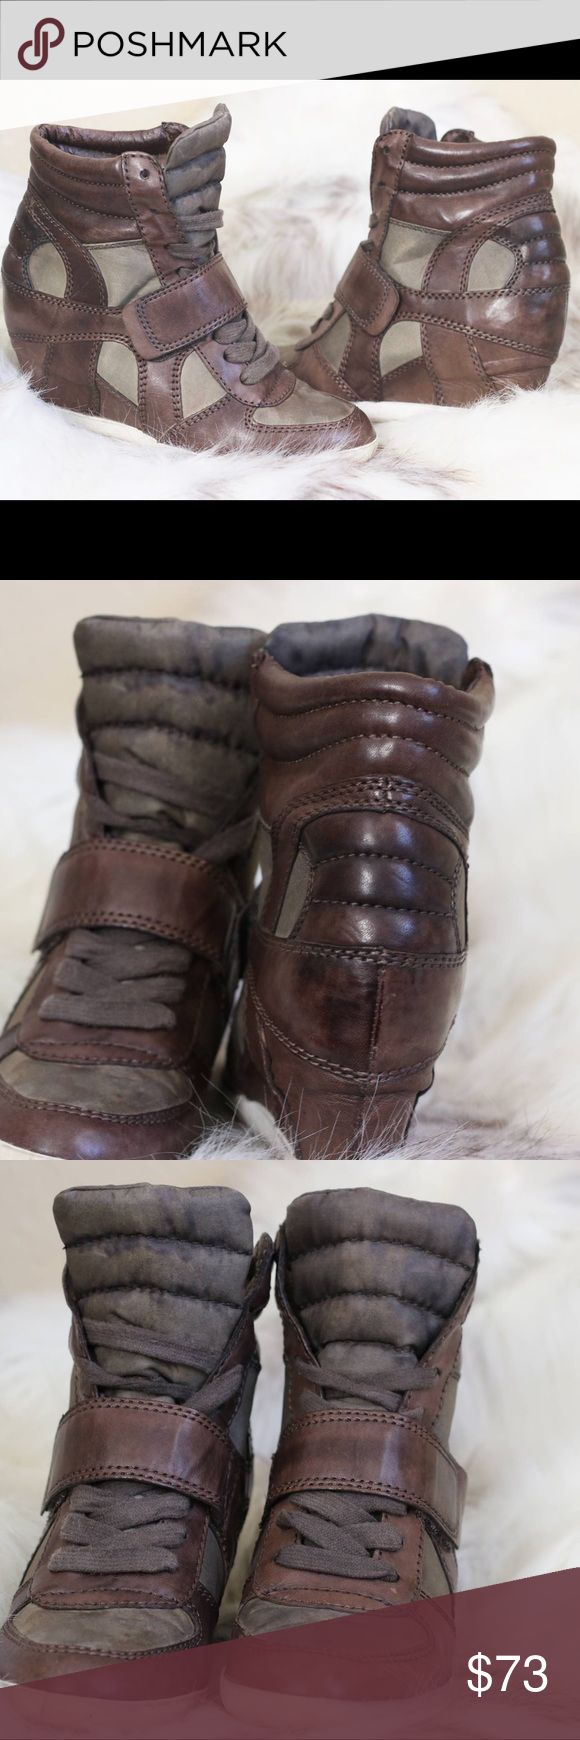 """ASH Sneaker Wedge Biba Leather Wedge Sneakers 6 Condition: Pre-owned  🎀Color: Green & Brown  🎀Heel Height 3"""" 🎀Round Toe  🎀Lace Closure  🎀Man made outsole Ash Shoes Wedges"""